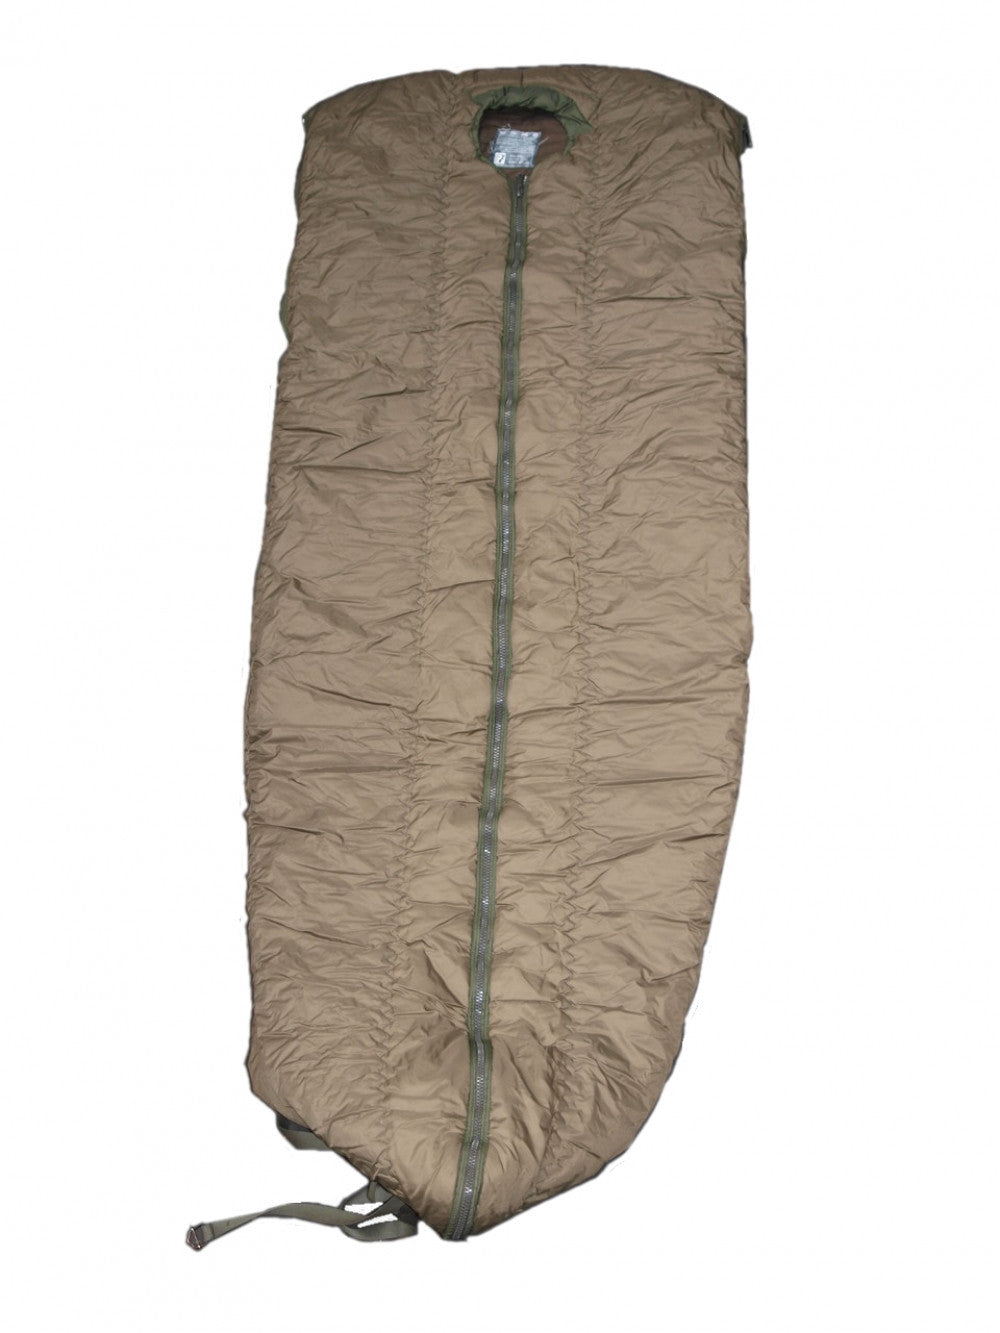 Army Sleeping Bag - Austrian Sniper 3 Season